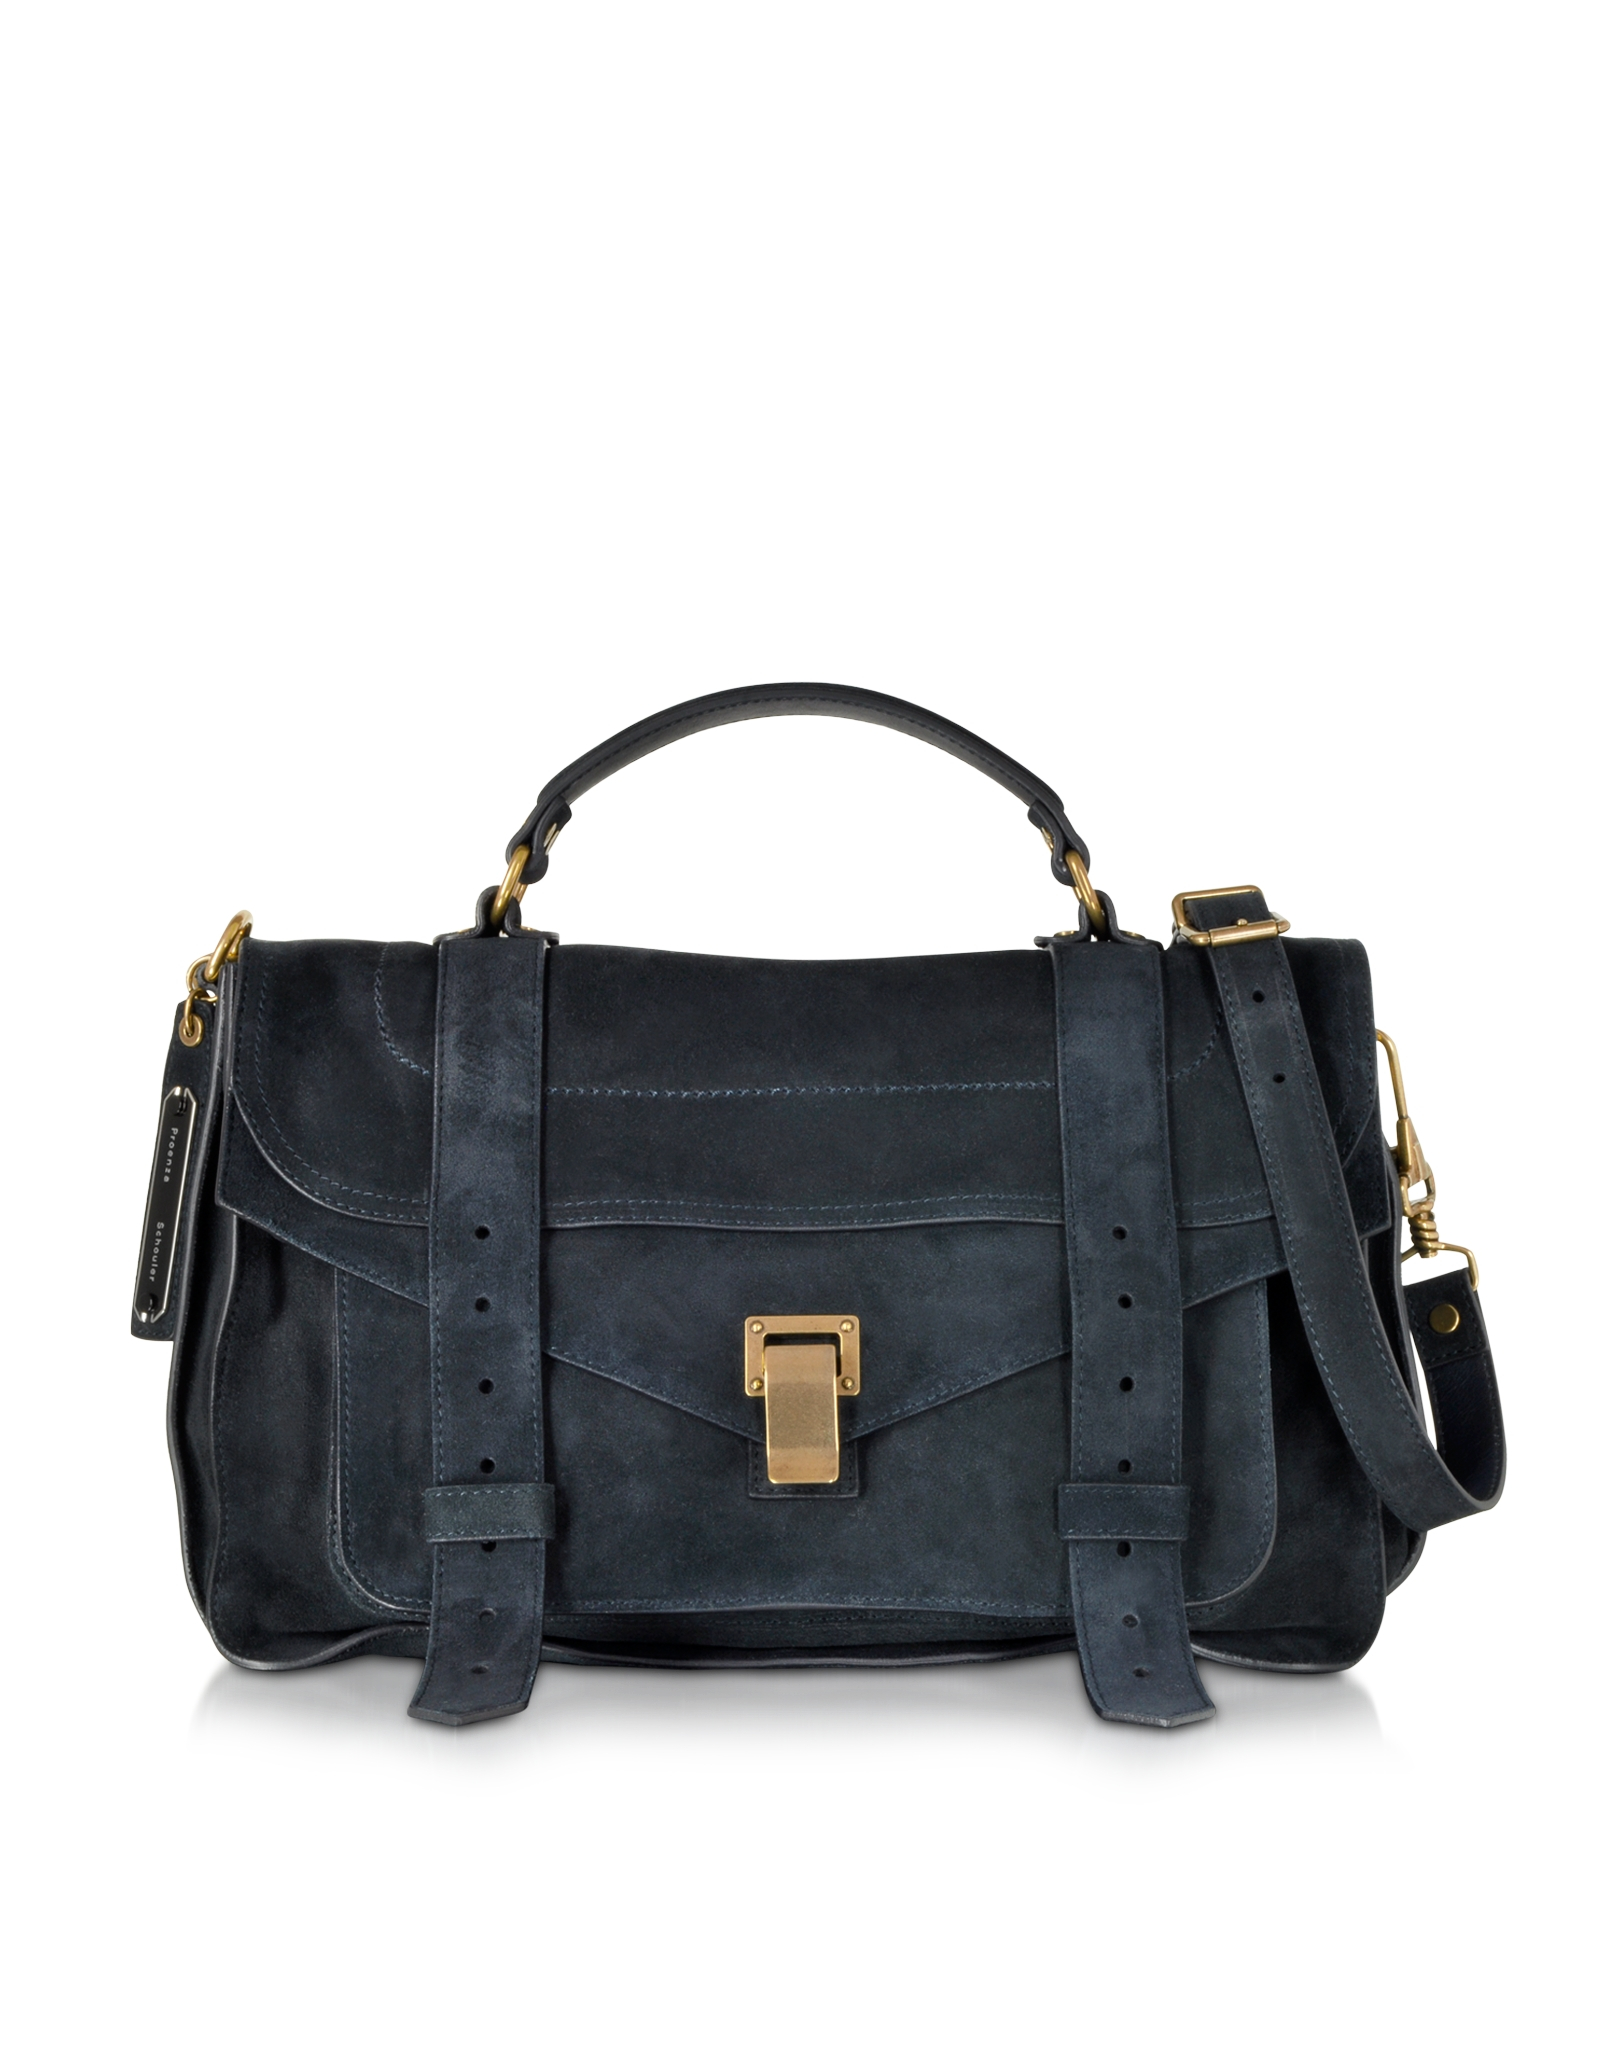 Proenza schouler Ps1 Medium Navy Suede Satchel Bag in Black | Lyst